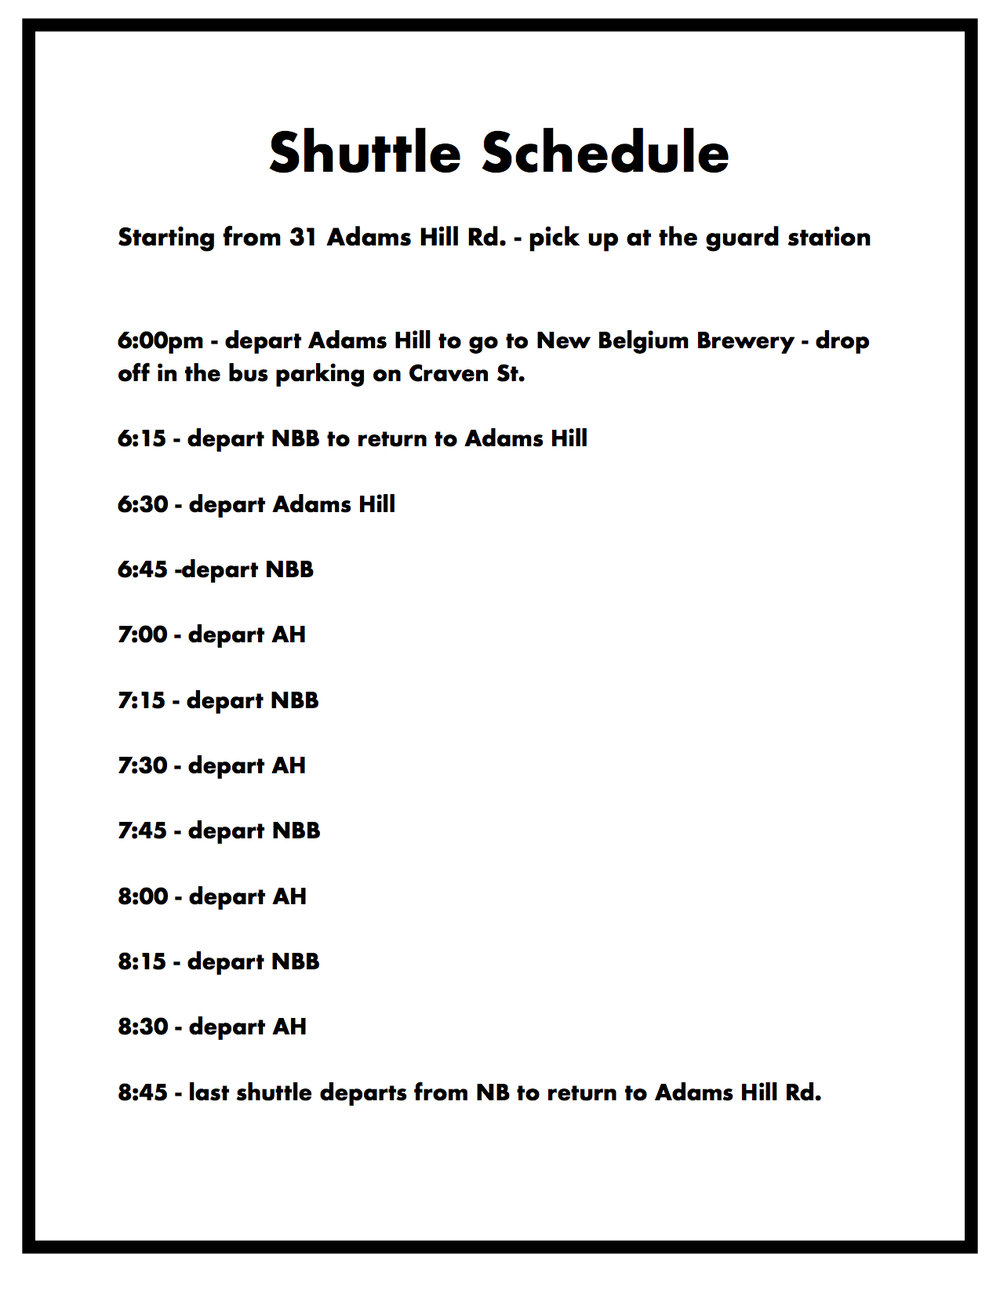 ABFShuttle Schedule.jpg